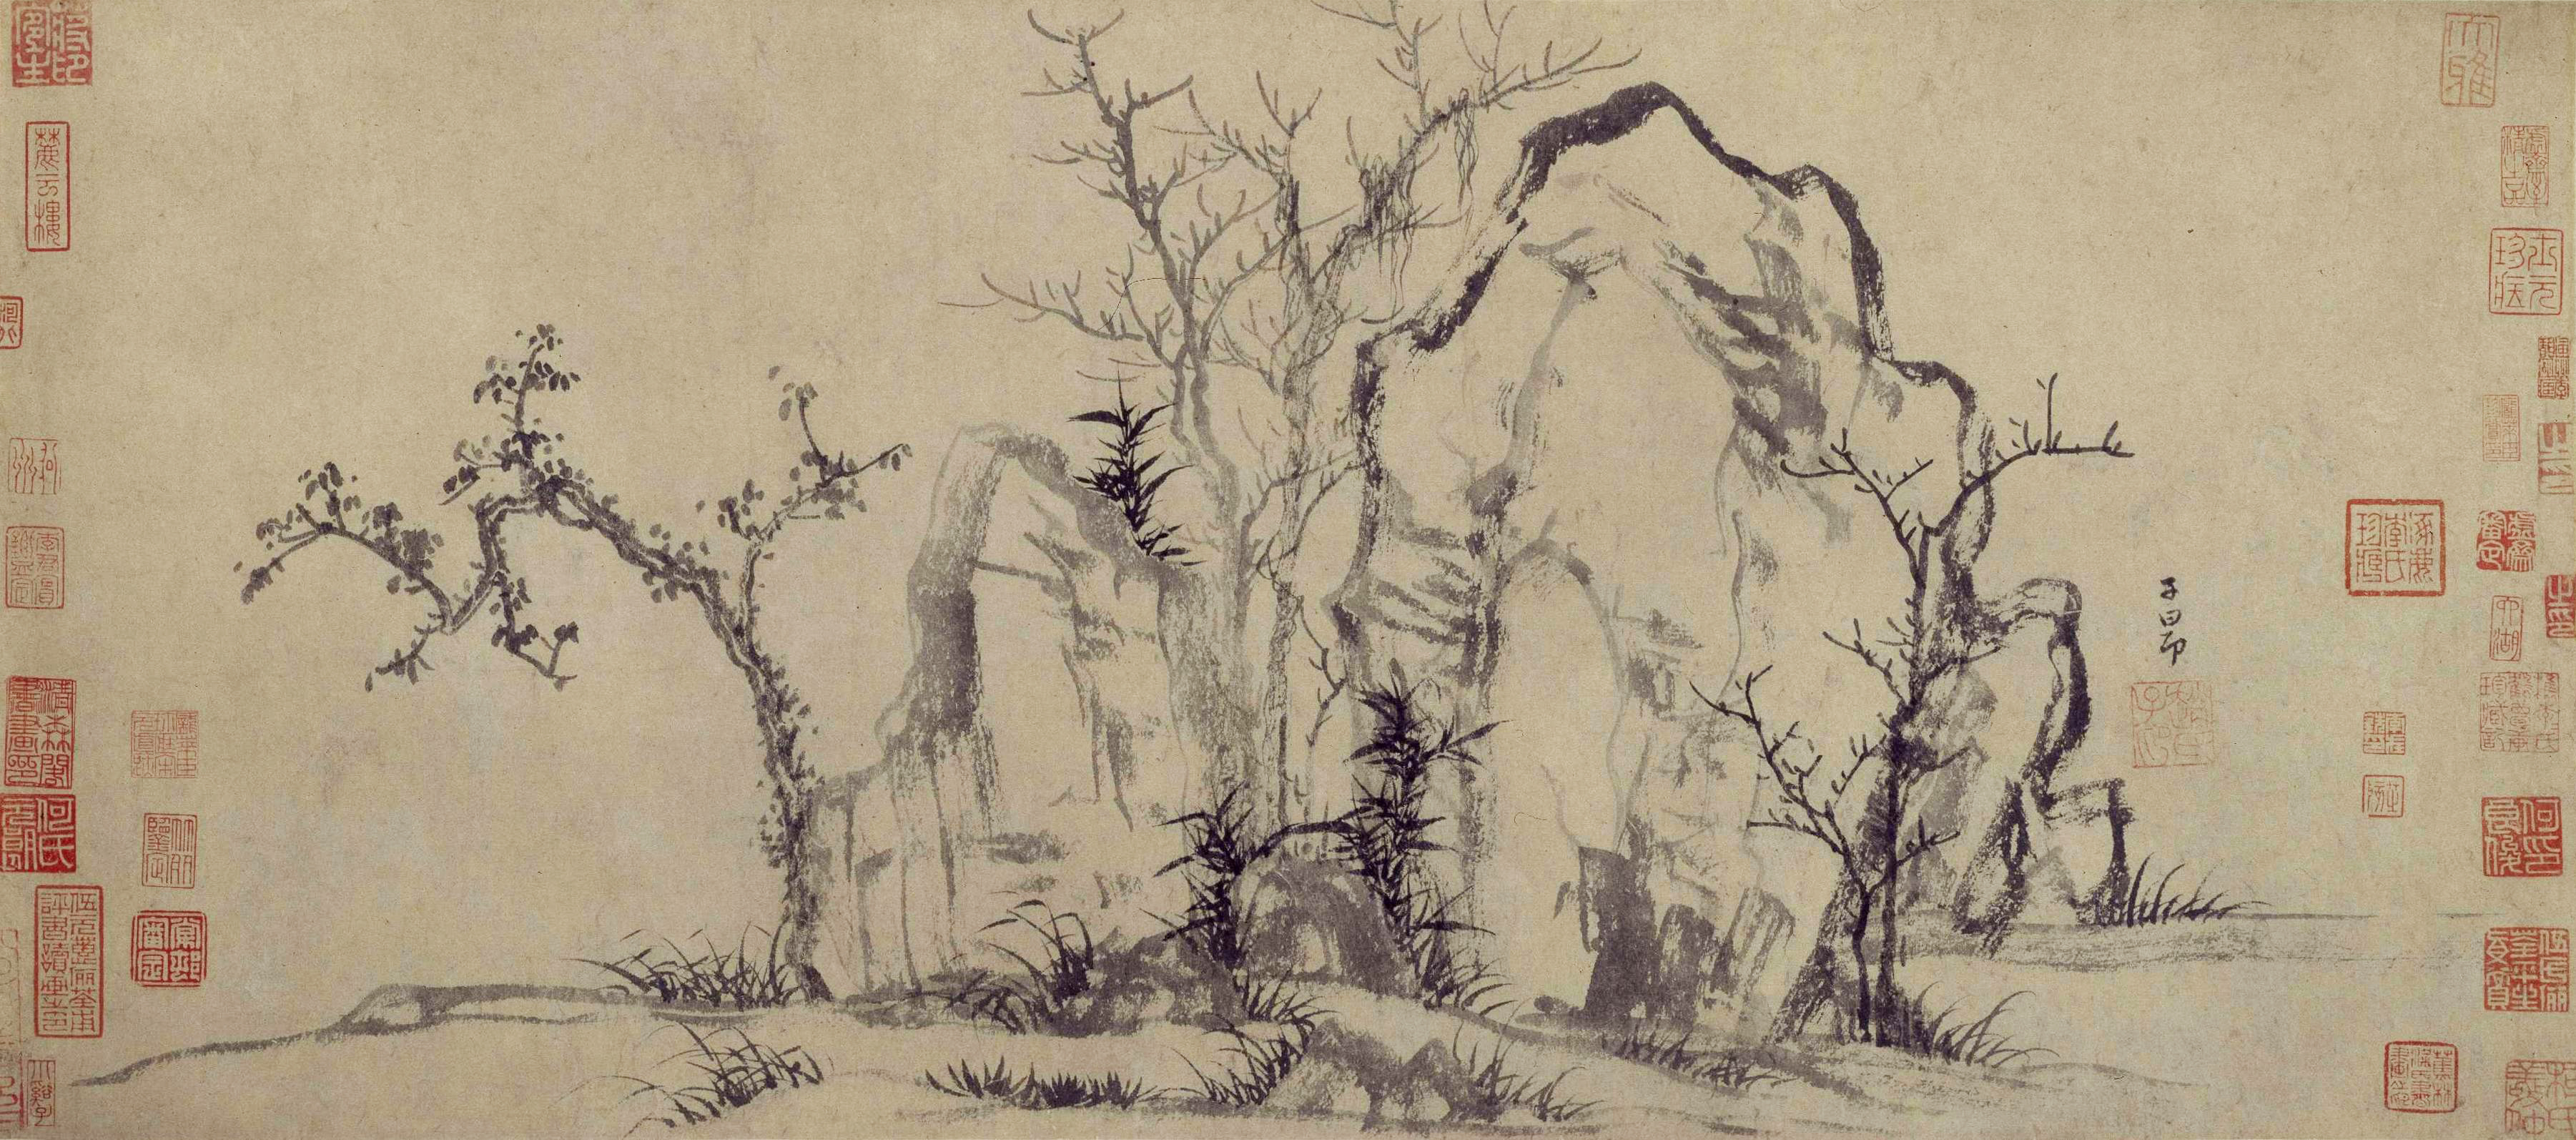 http://upload.wikimedia.org/wikipedia/commons/f/f5/Zhao_Meng_Fu_Elegant_Rocks_and_Sparse_Trees.jpg